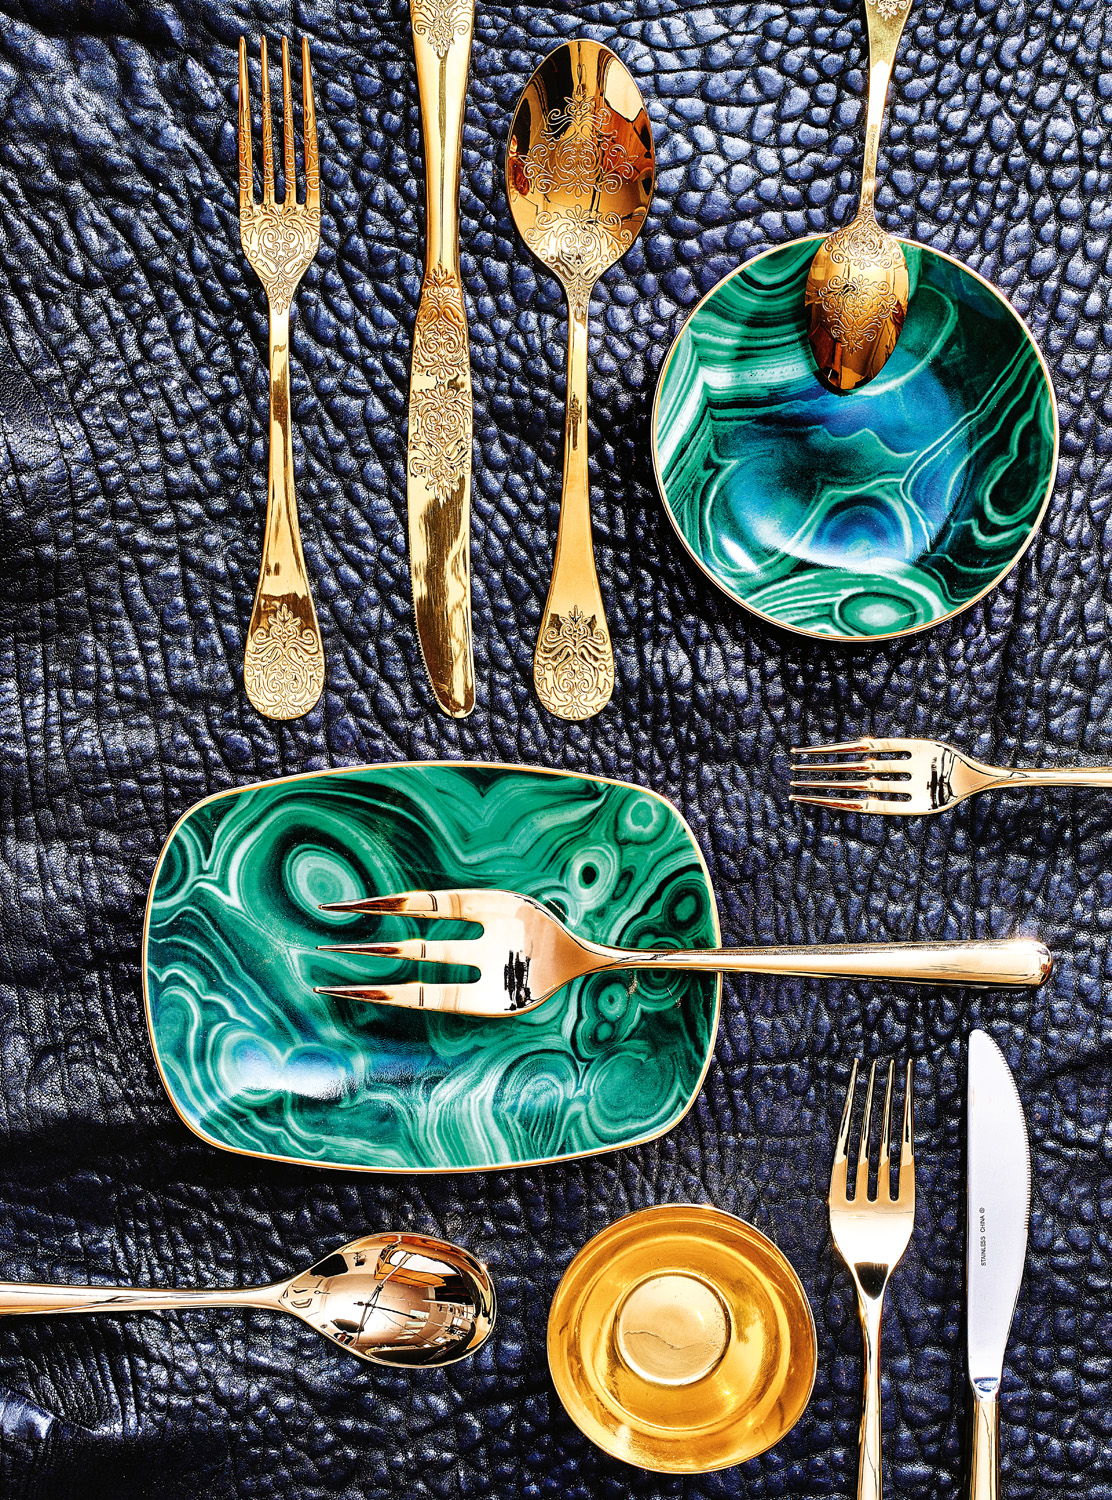 Pompadour gold (filigree) 24-piece set. L'Object malachite plates from beckerminty.com Cambridge soiree two-piece server set and five-piece place setting from. Small brass cloud bowl